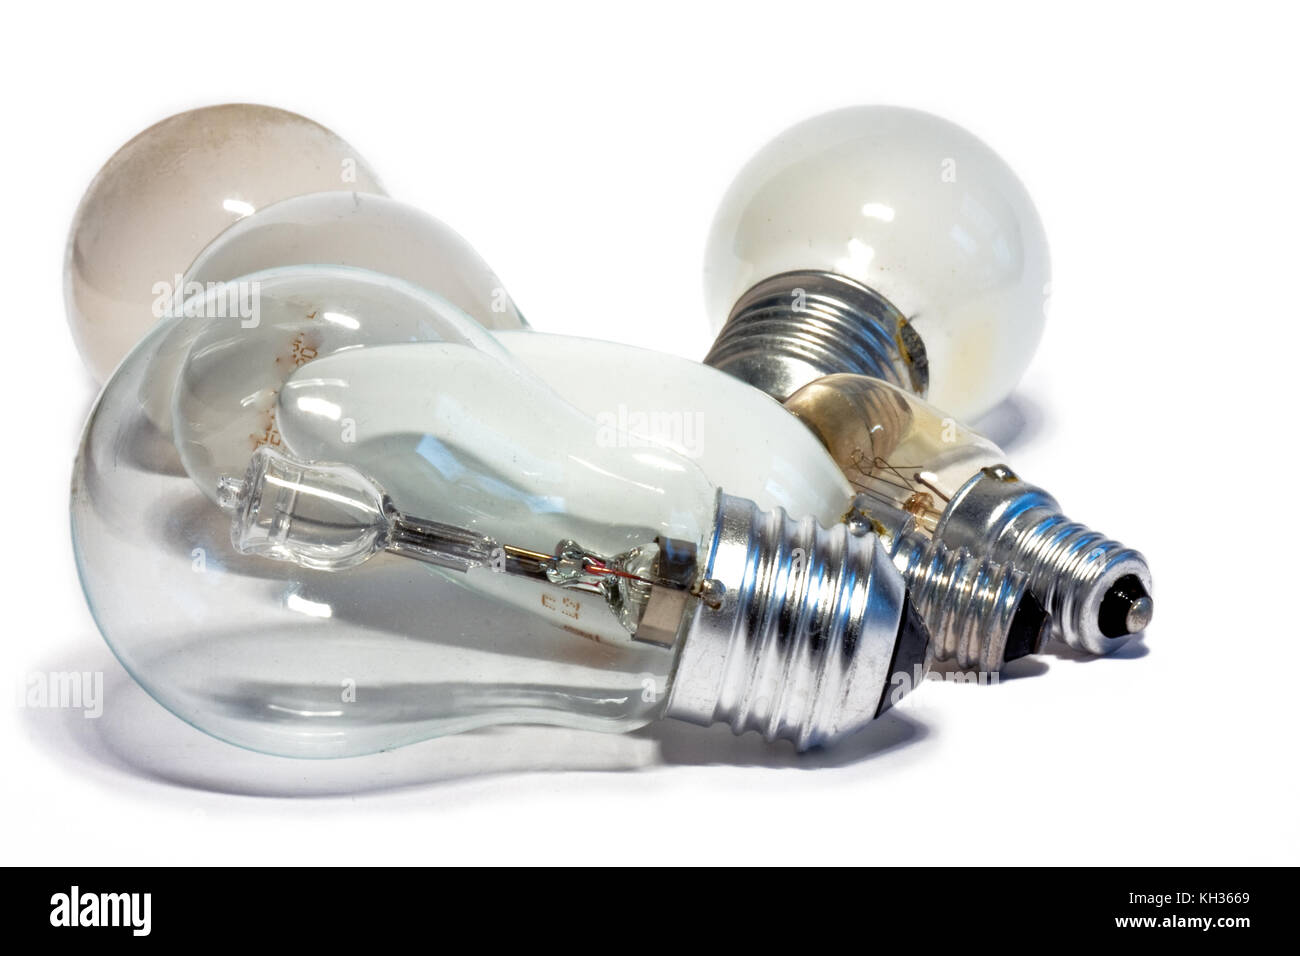 Six light bulbs on a white background - Stock Image